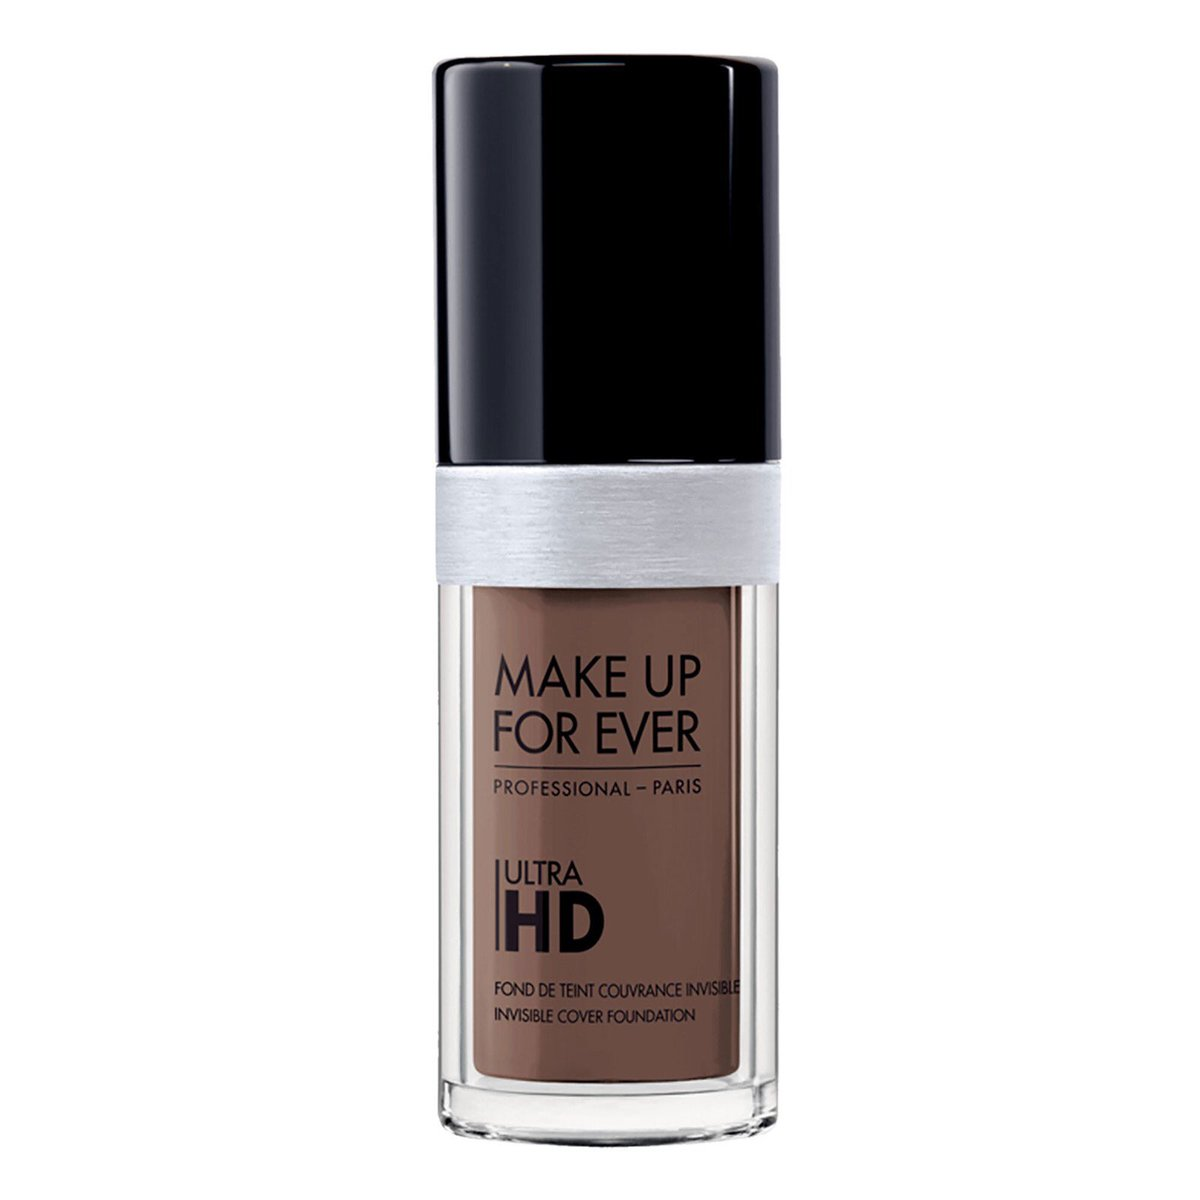 """""""If you want a foundation that gives you the right amount of glow without looking too dewy, the MAKE UP FOR EVER Ultra HD Invisible Cover Foundation is the one for you.""""- @Allure_magazine Gabi Thorne, Editorial Assistant Read More:  https://t.co/q9oRBrrXFo https://t.co/b0M3oIqoZ6"""